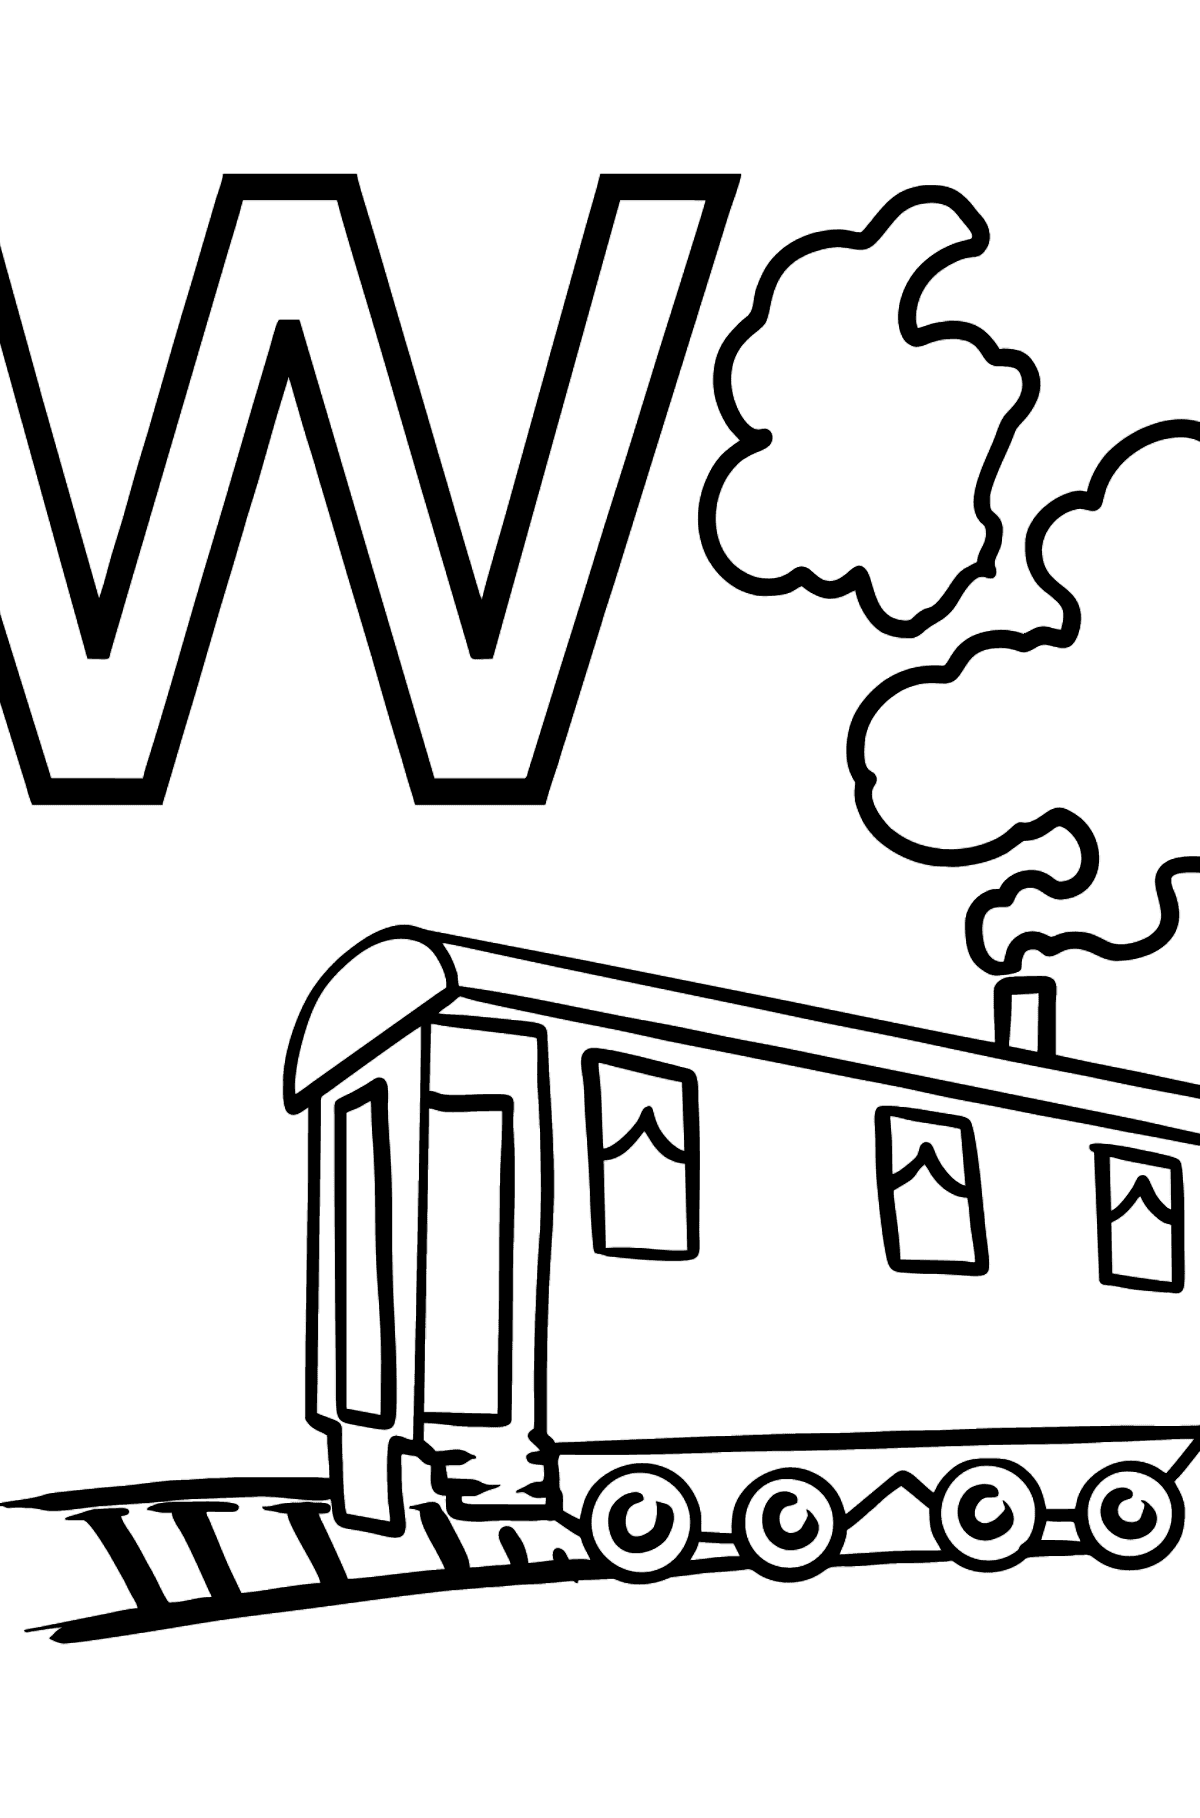 French Letter W coloring pages - WAGON - Coloring Pages for Kids